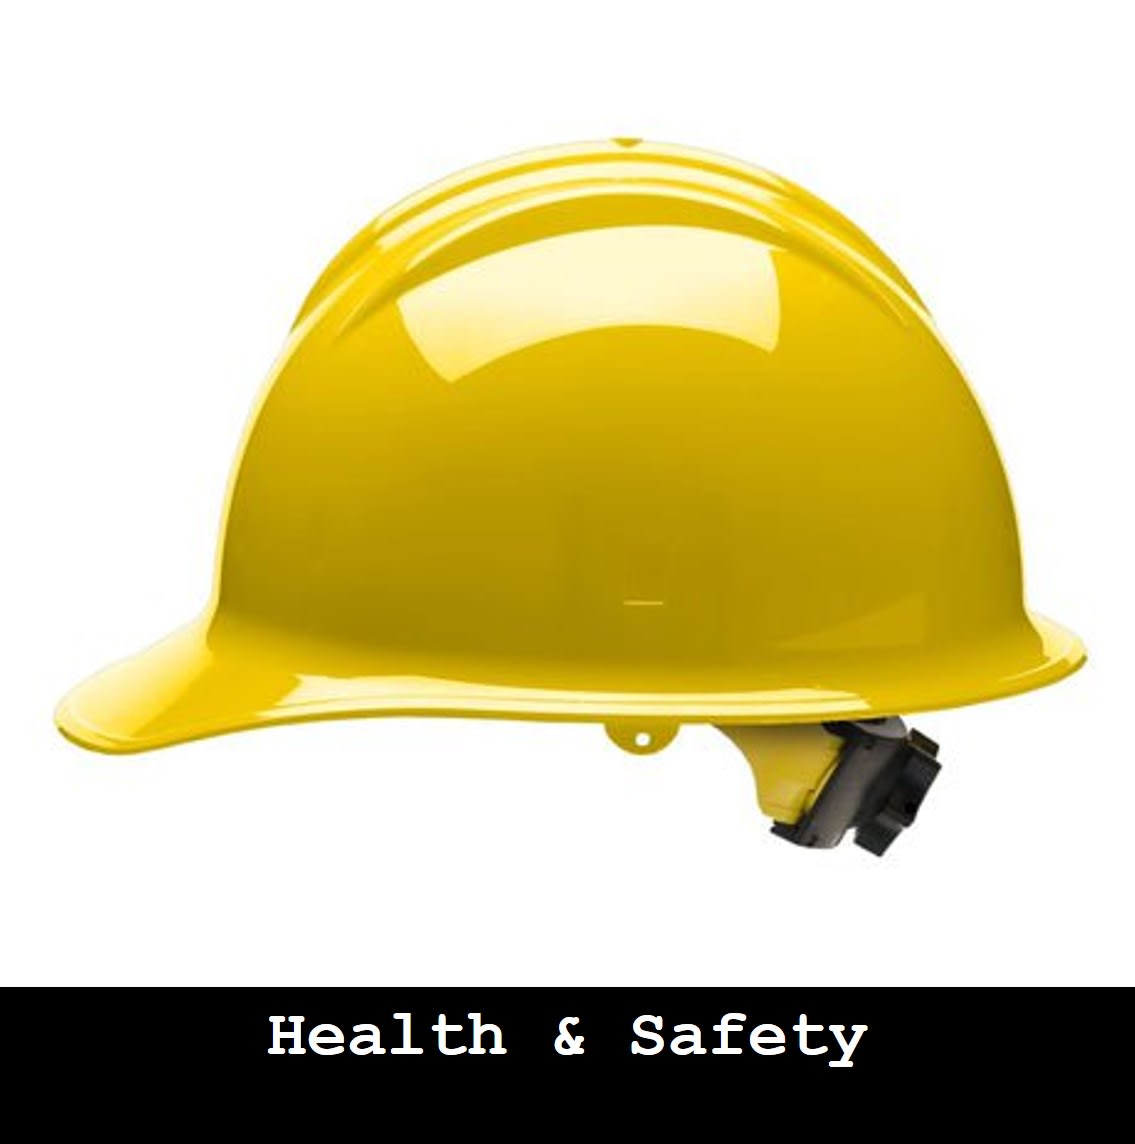 Health & Safety | Smith Industrial Supply | Port Colborne Industrial Supply